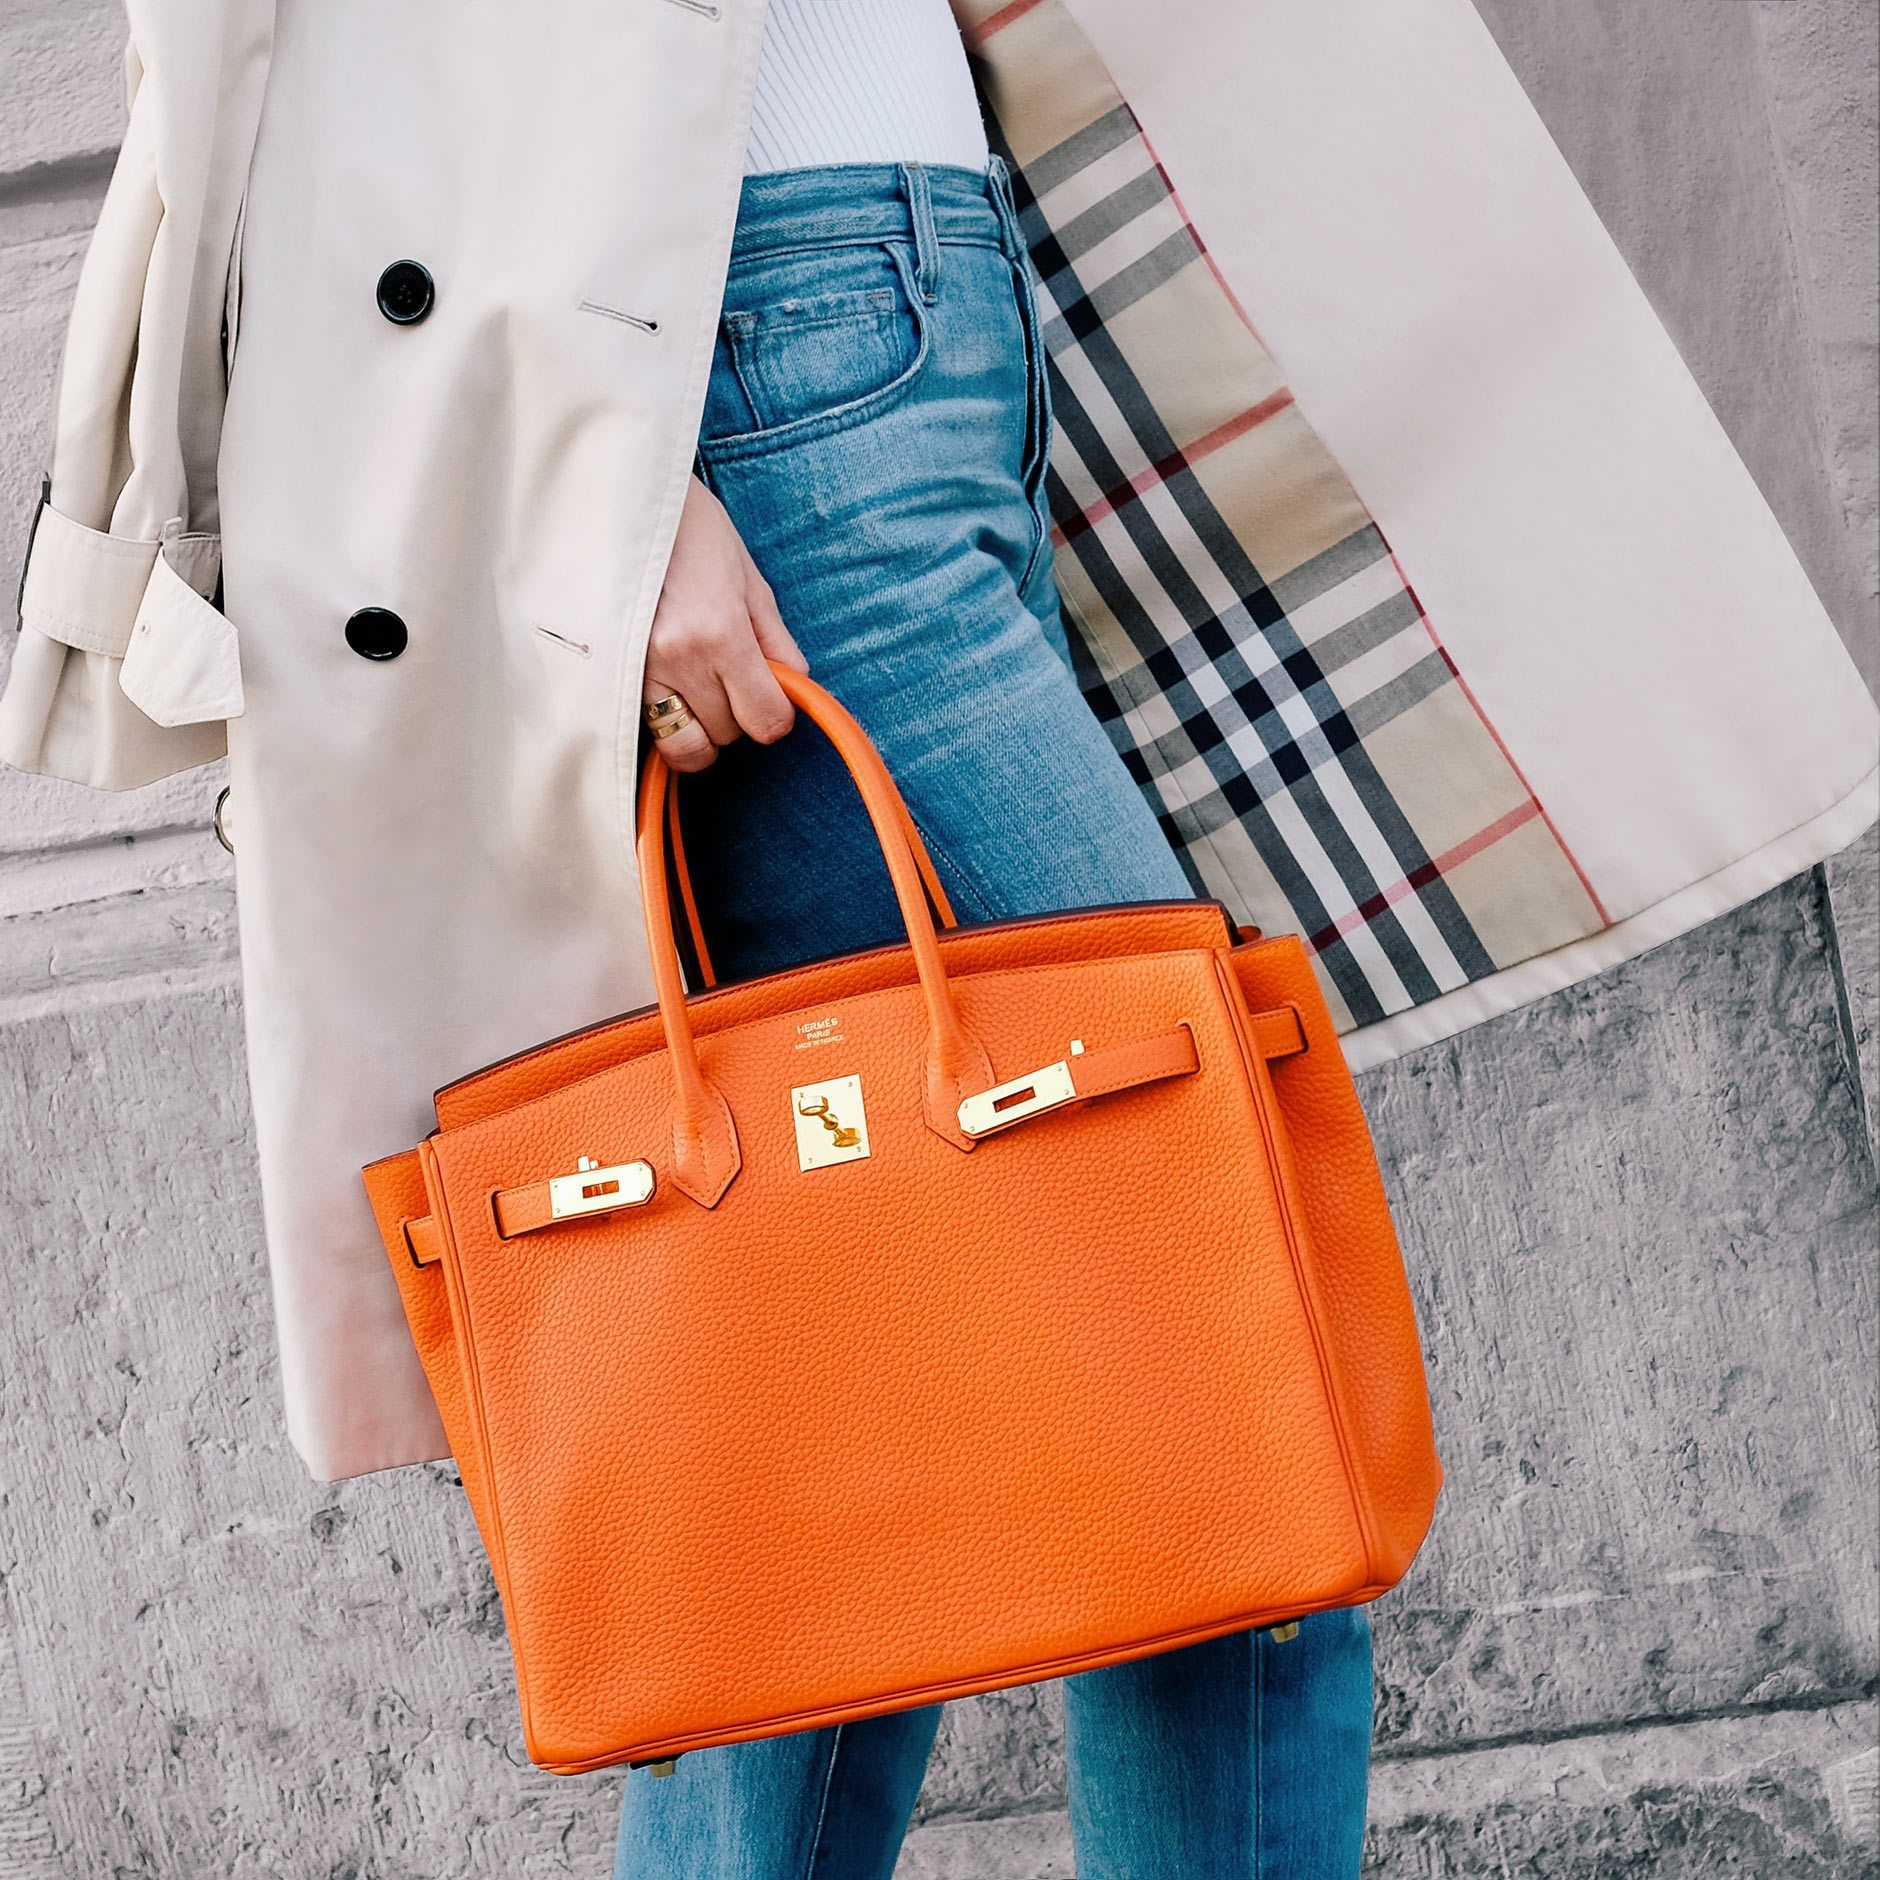 ac546c3c9e Hermès orange Birkin bag (size 35